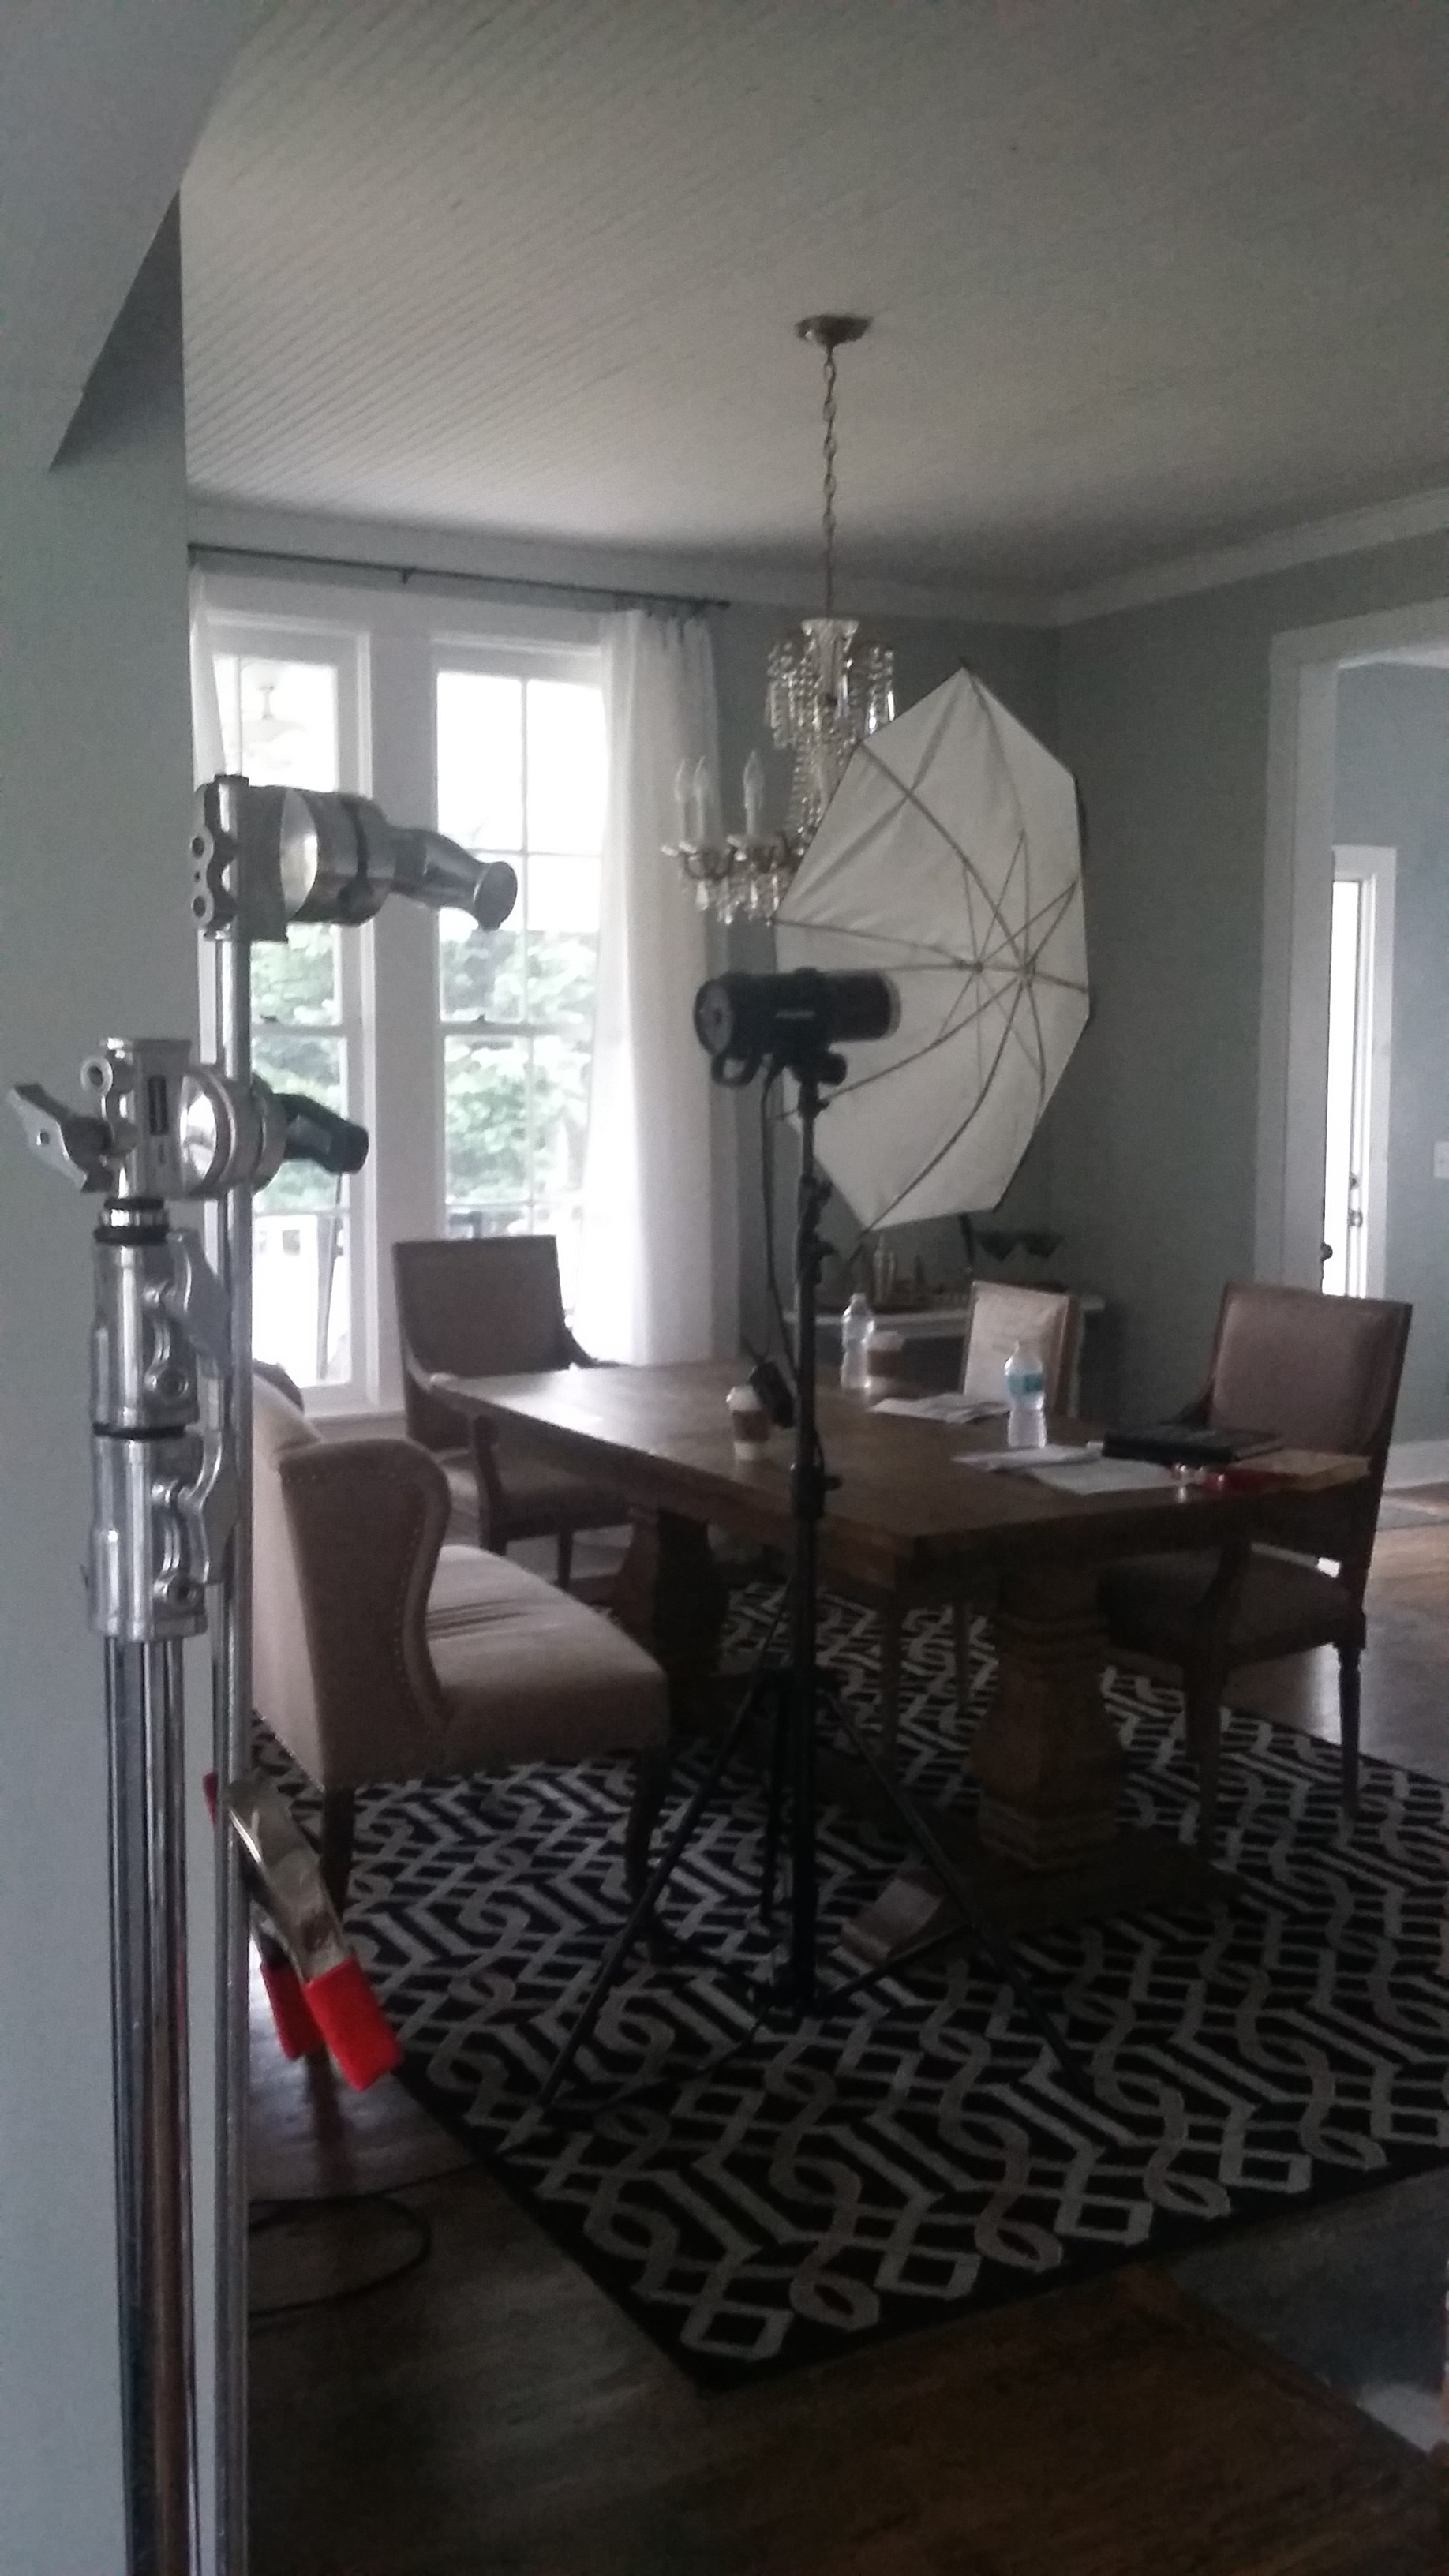 Behind the scenes of a home decor magazine photo shoot 8